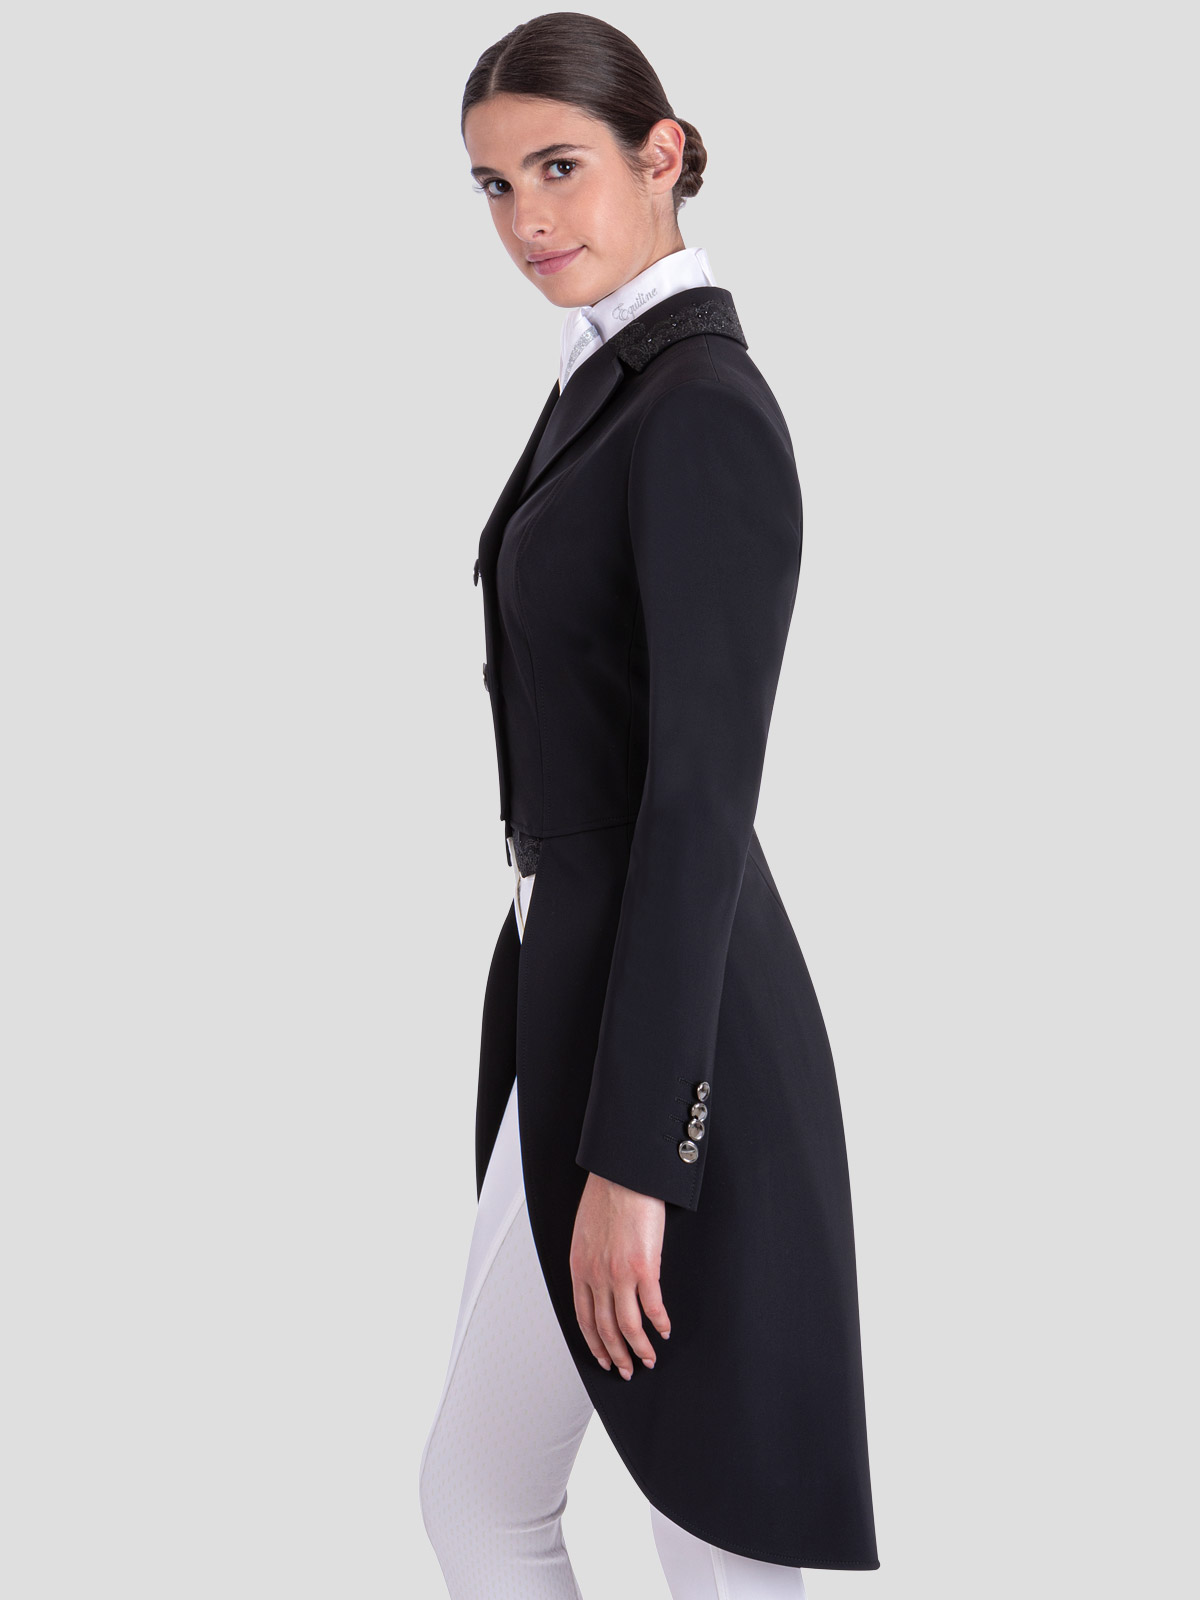 GREM WOMEN'S TAILCOAT WITH LACE EMBROIDERY DETAILS 3